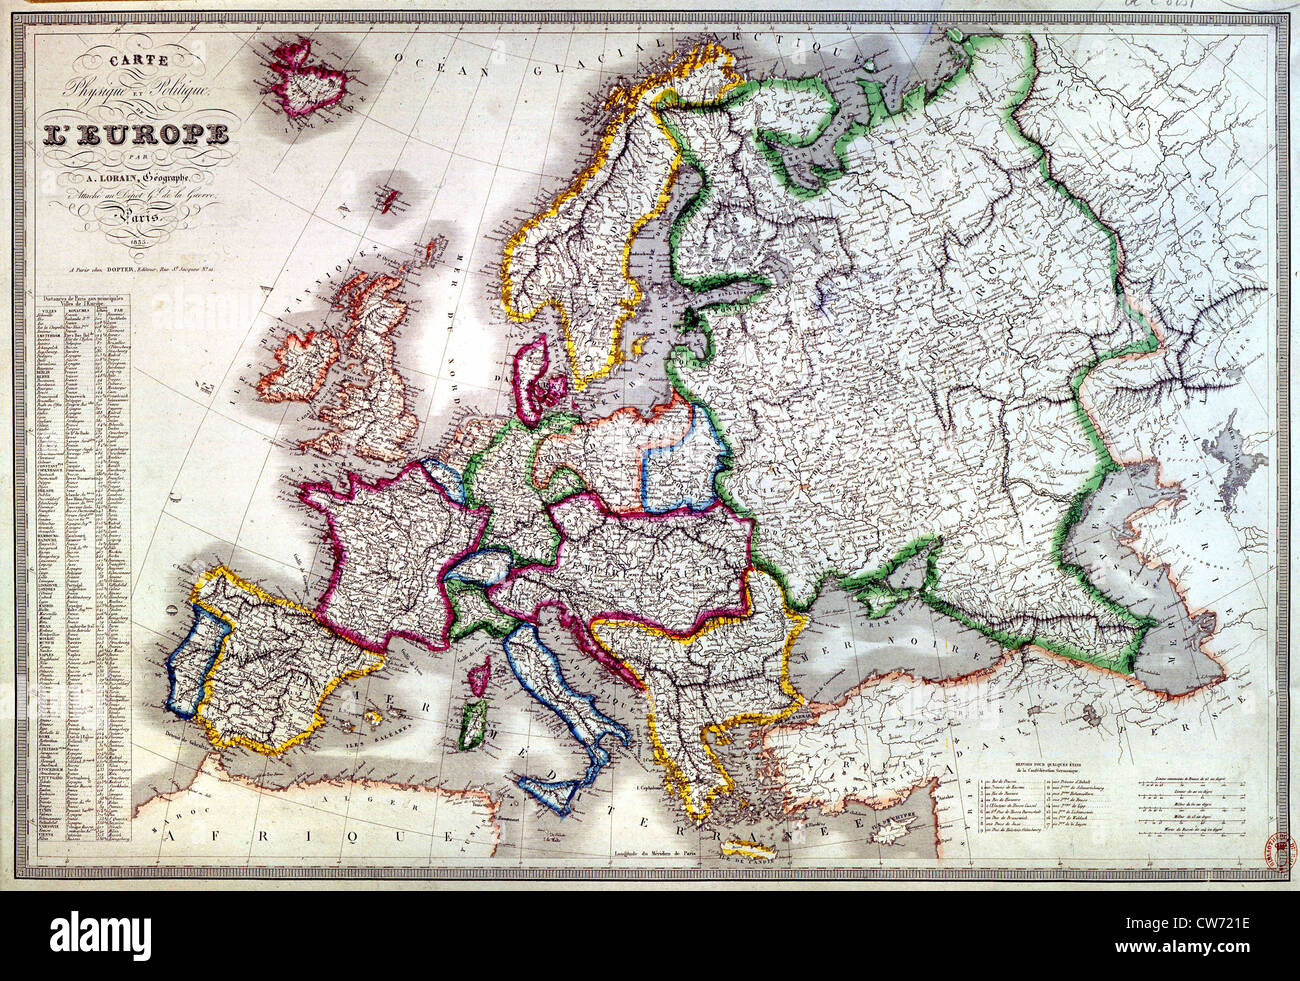 Map of Europe in 1836 - Stock Image